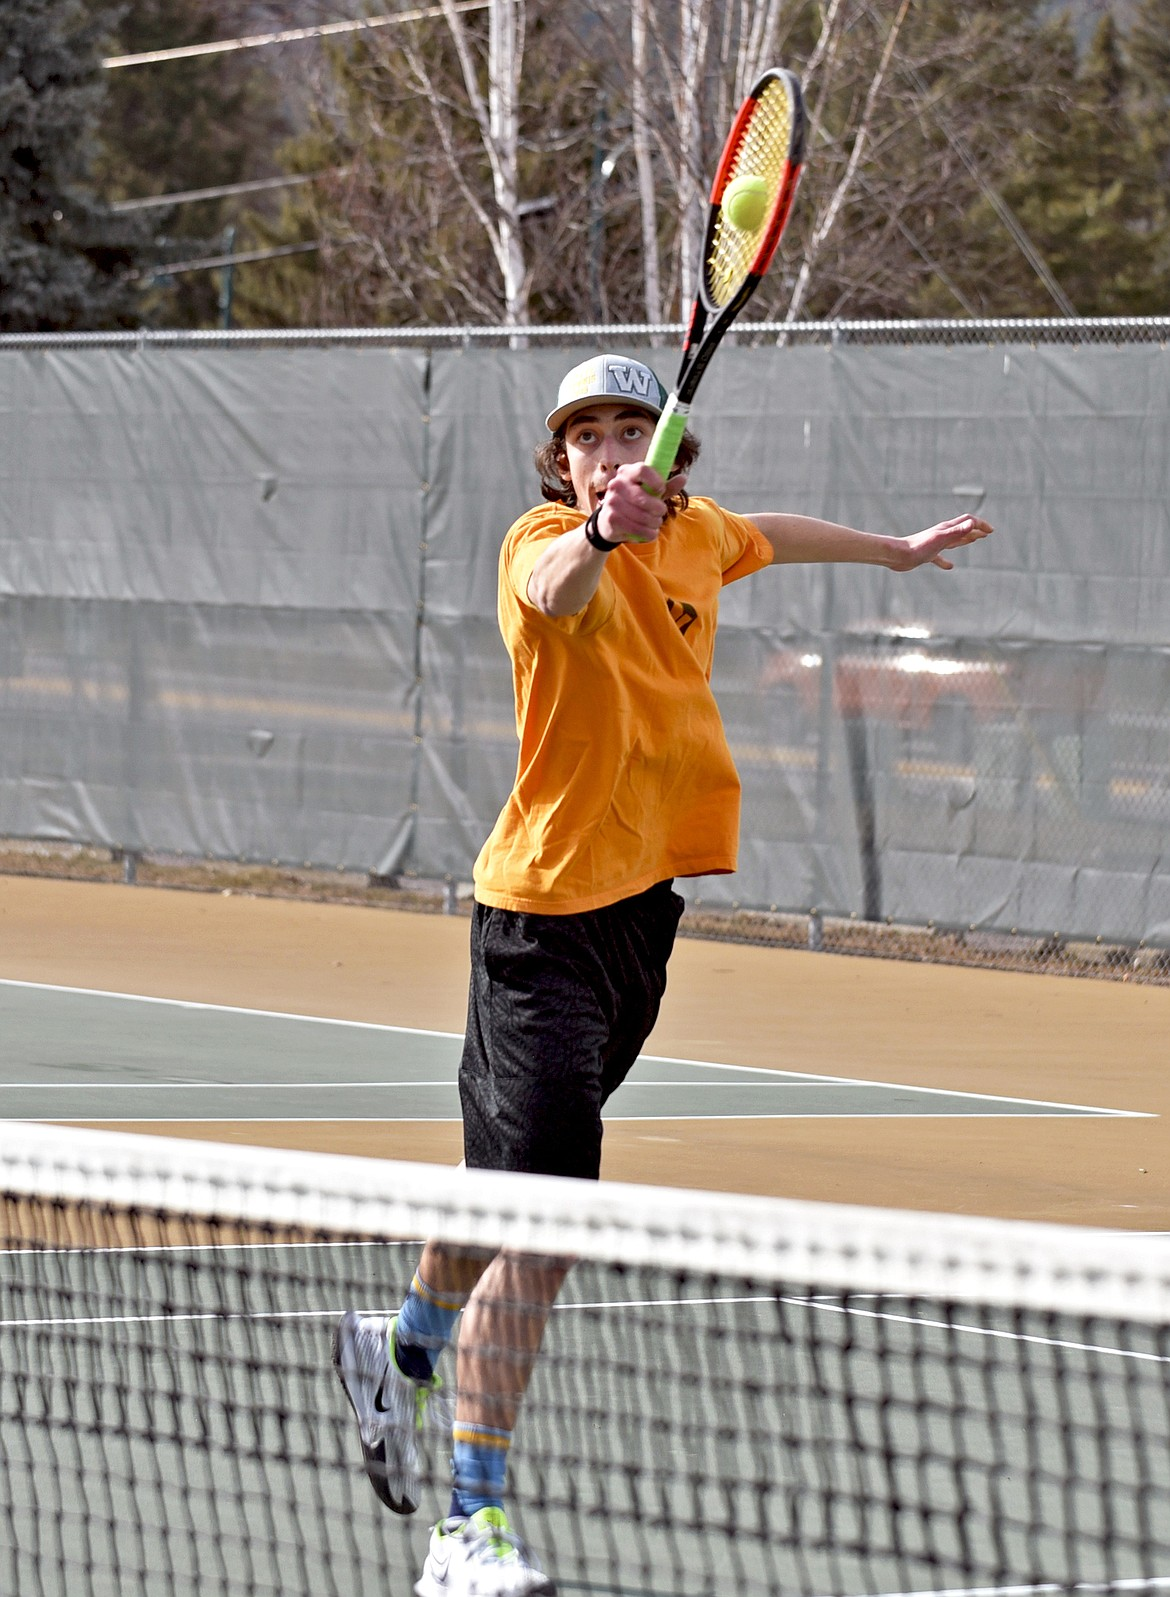 Whitefish senior Jayce Cripe hits a volley at the net during the high school boys tennis practice on Thursday. (Whitney England/Whitefish Pilot)